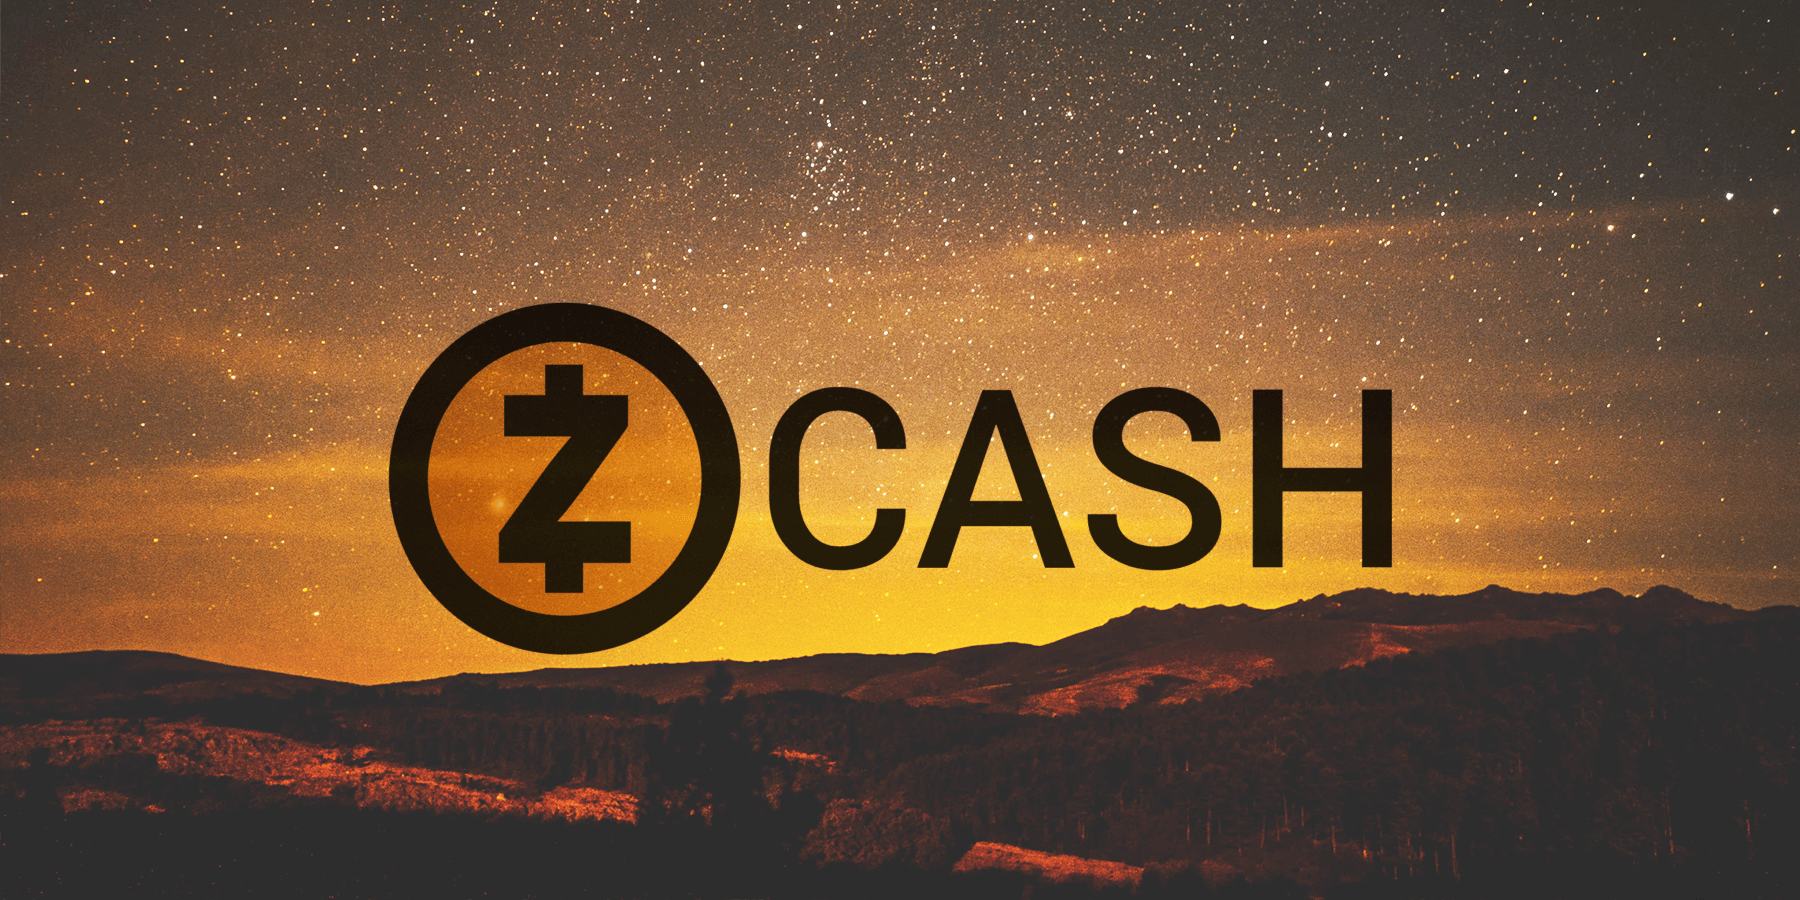 ZCash | ZCash Price | Gemini Trust Co. | Winklevoss Brothers | Crytpocurrency exchange | Zcash news